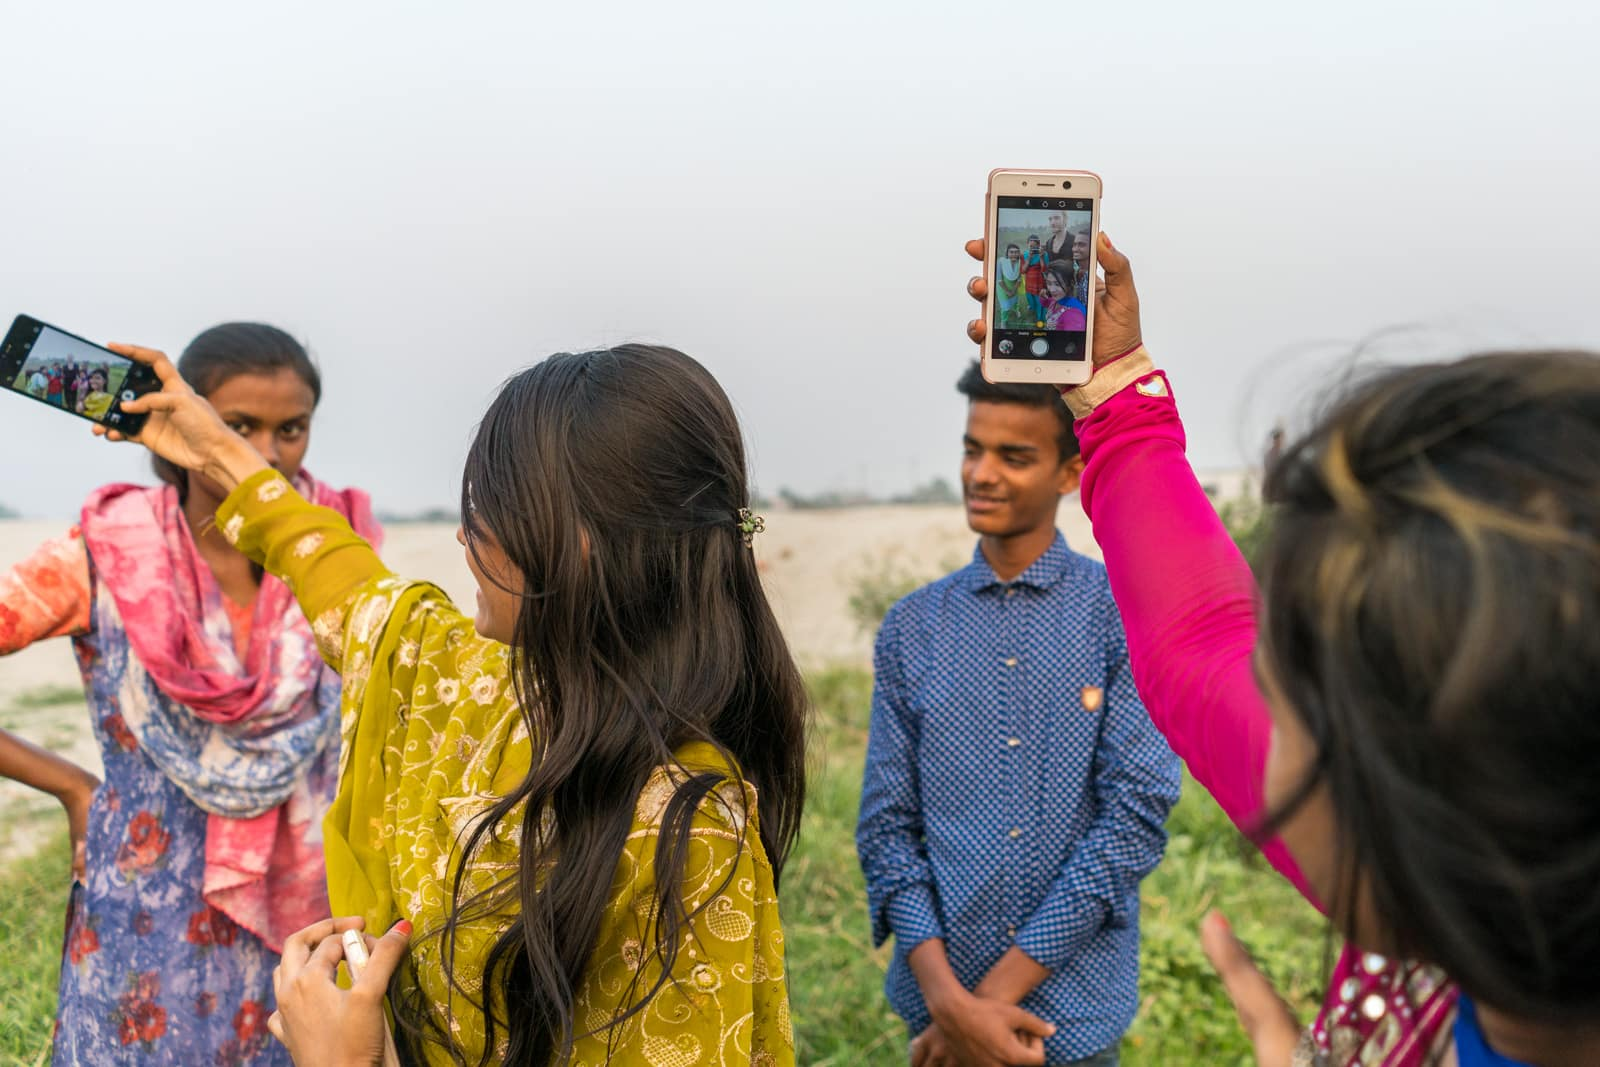 Guide to traveling as a woman in Bangladesh - Selfies with girls in Dhaka - Lost With Purpose travel blog